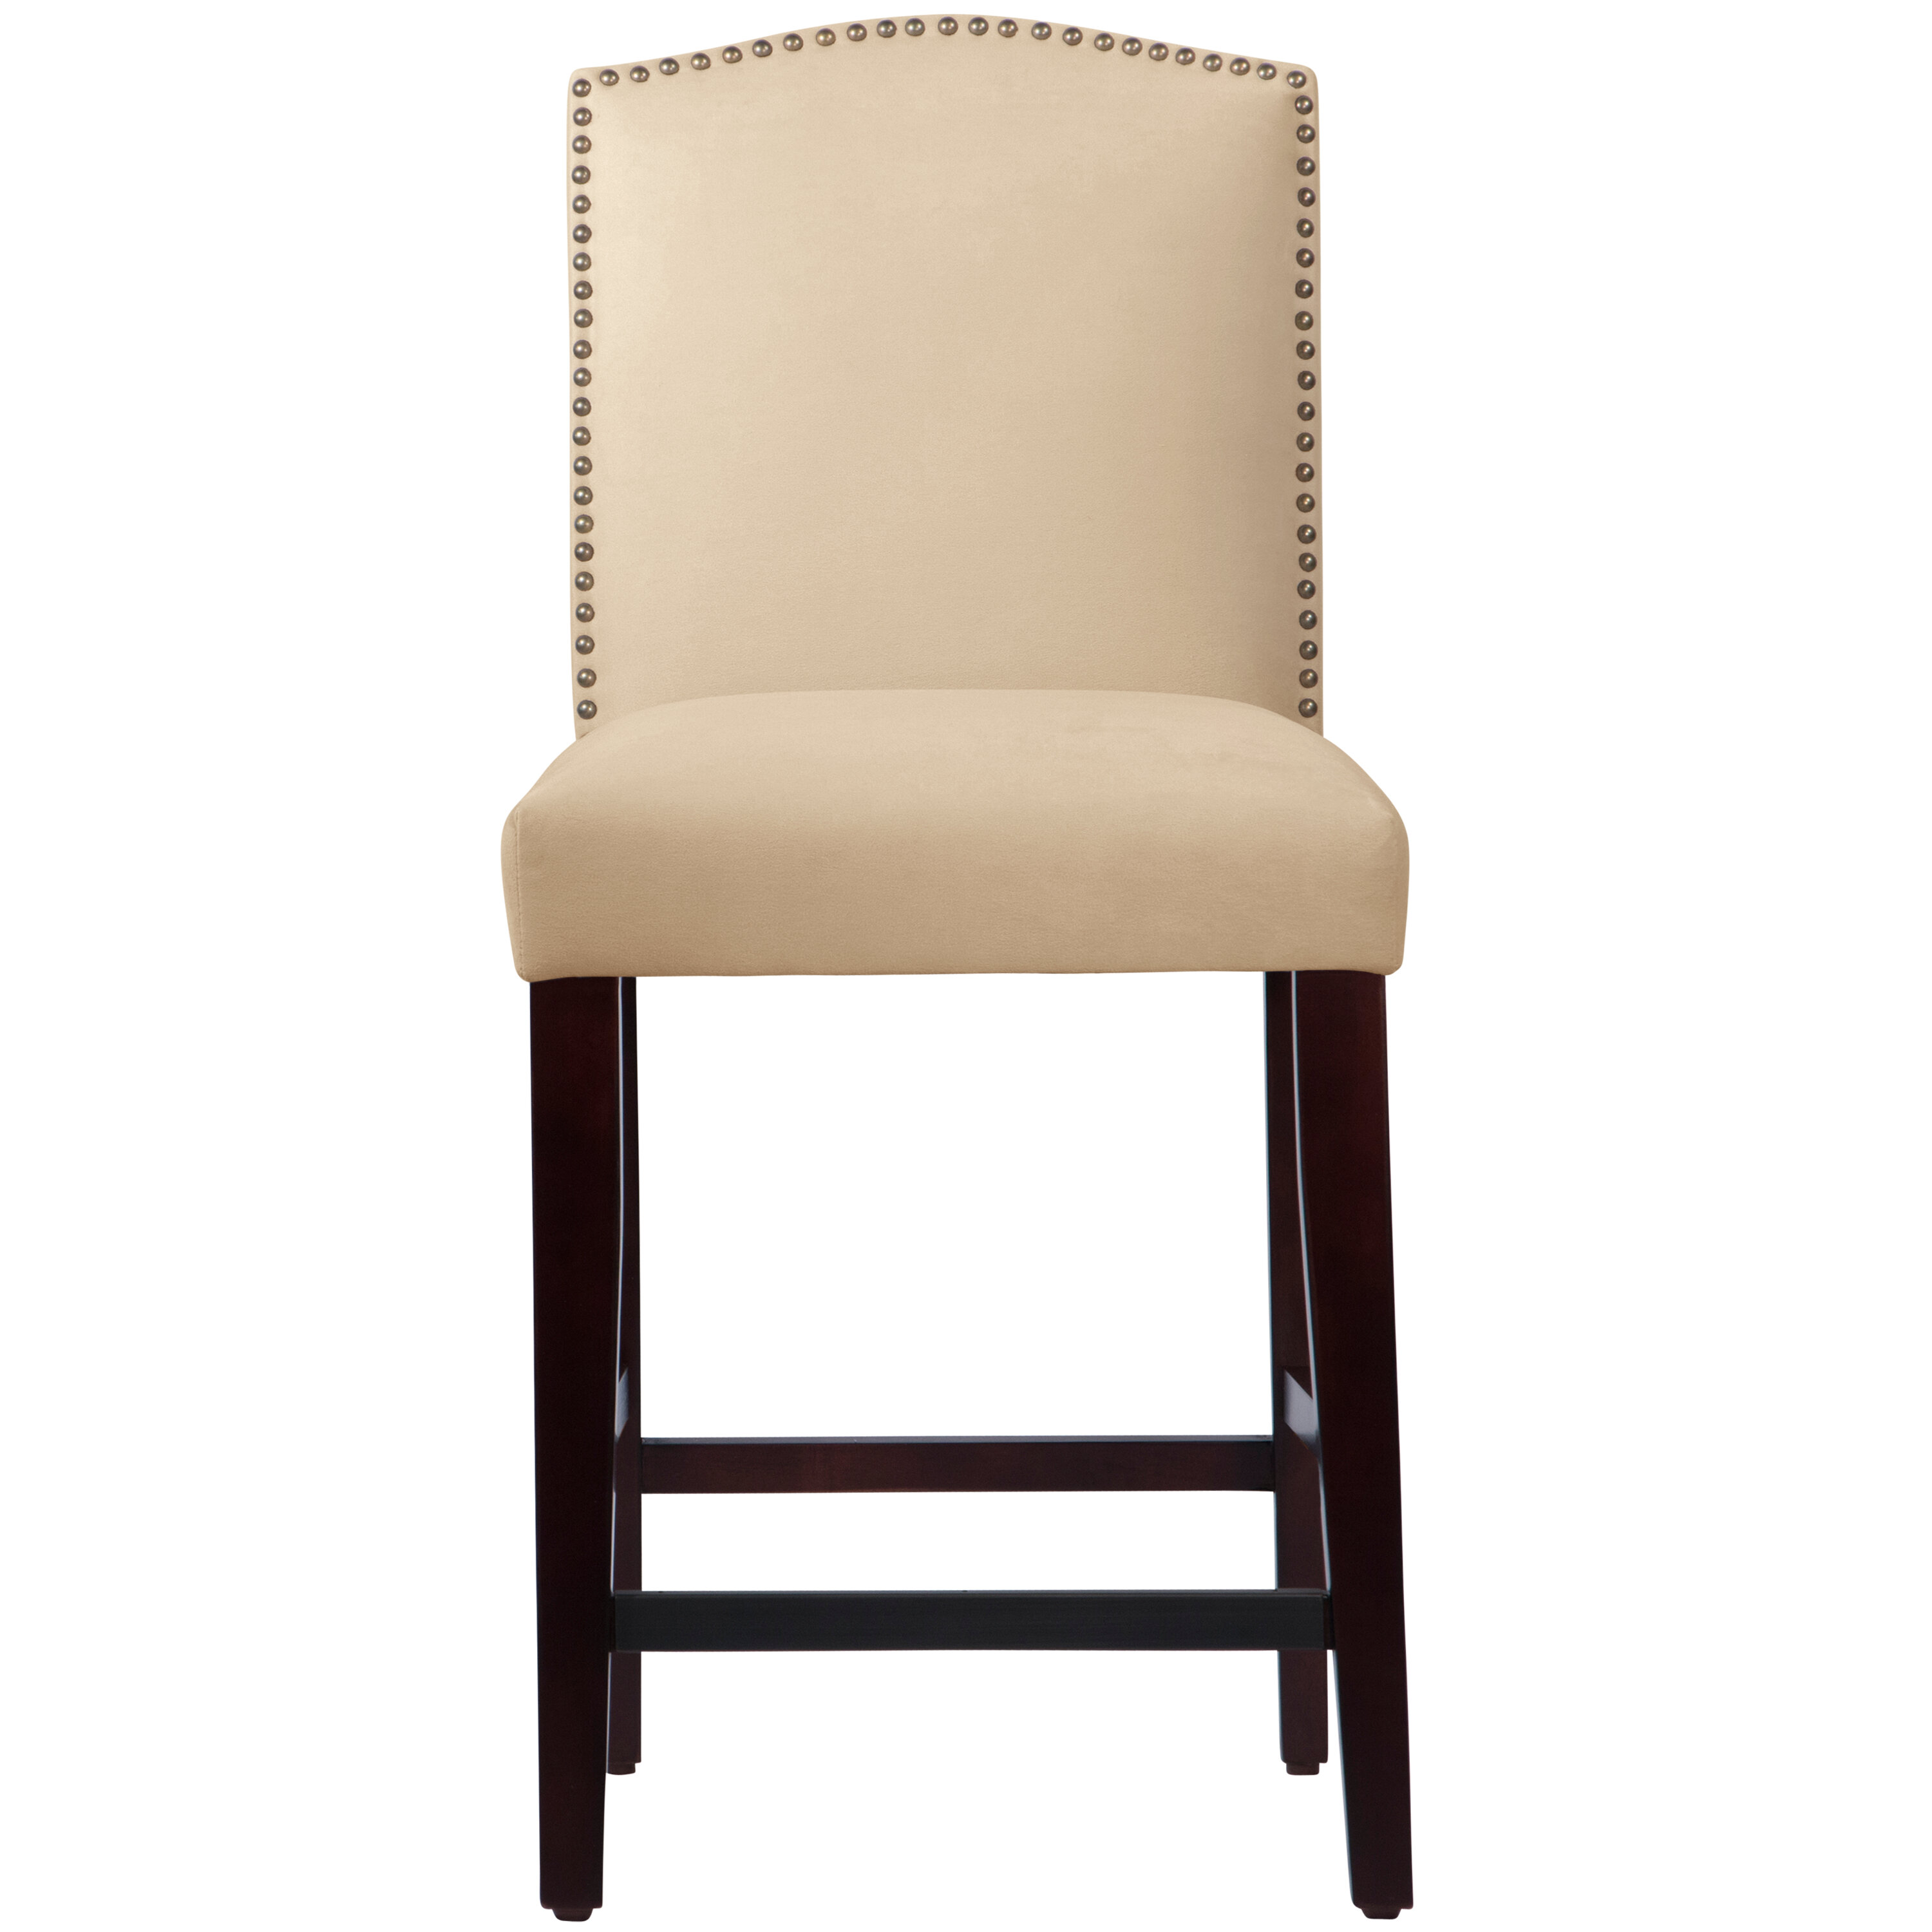 Marvelous Nadia 26 Bar Stool Gmtry Best Dining Table And Chair Ideas Images Gmtryco